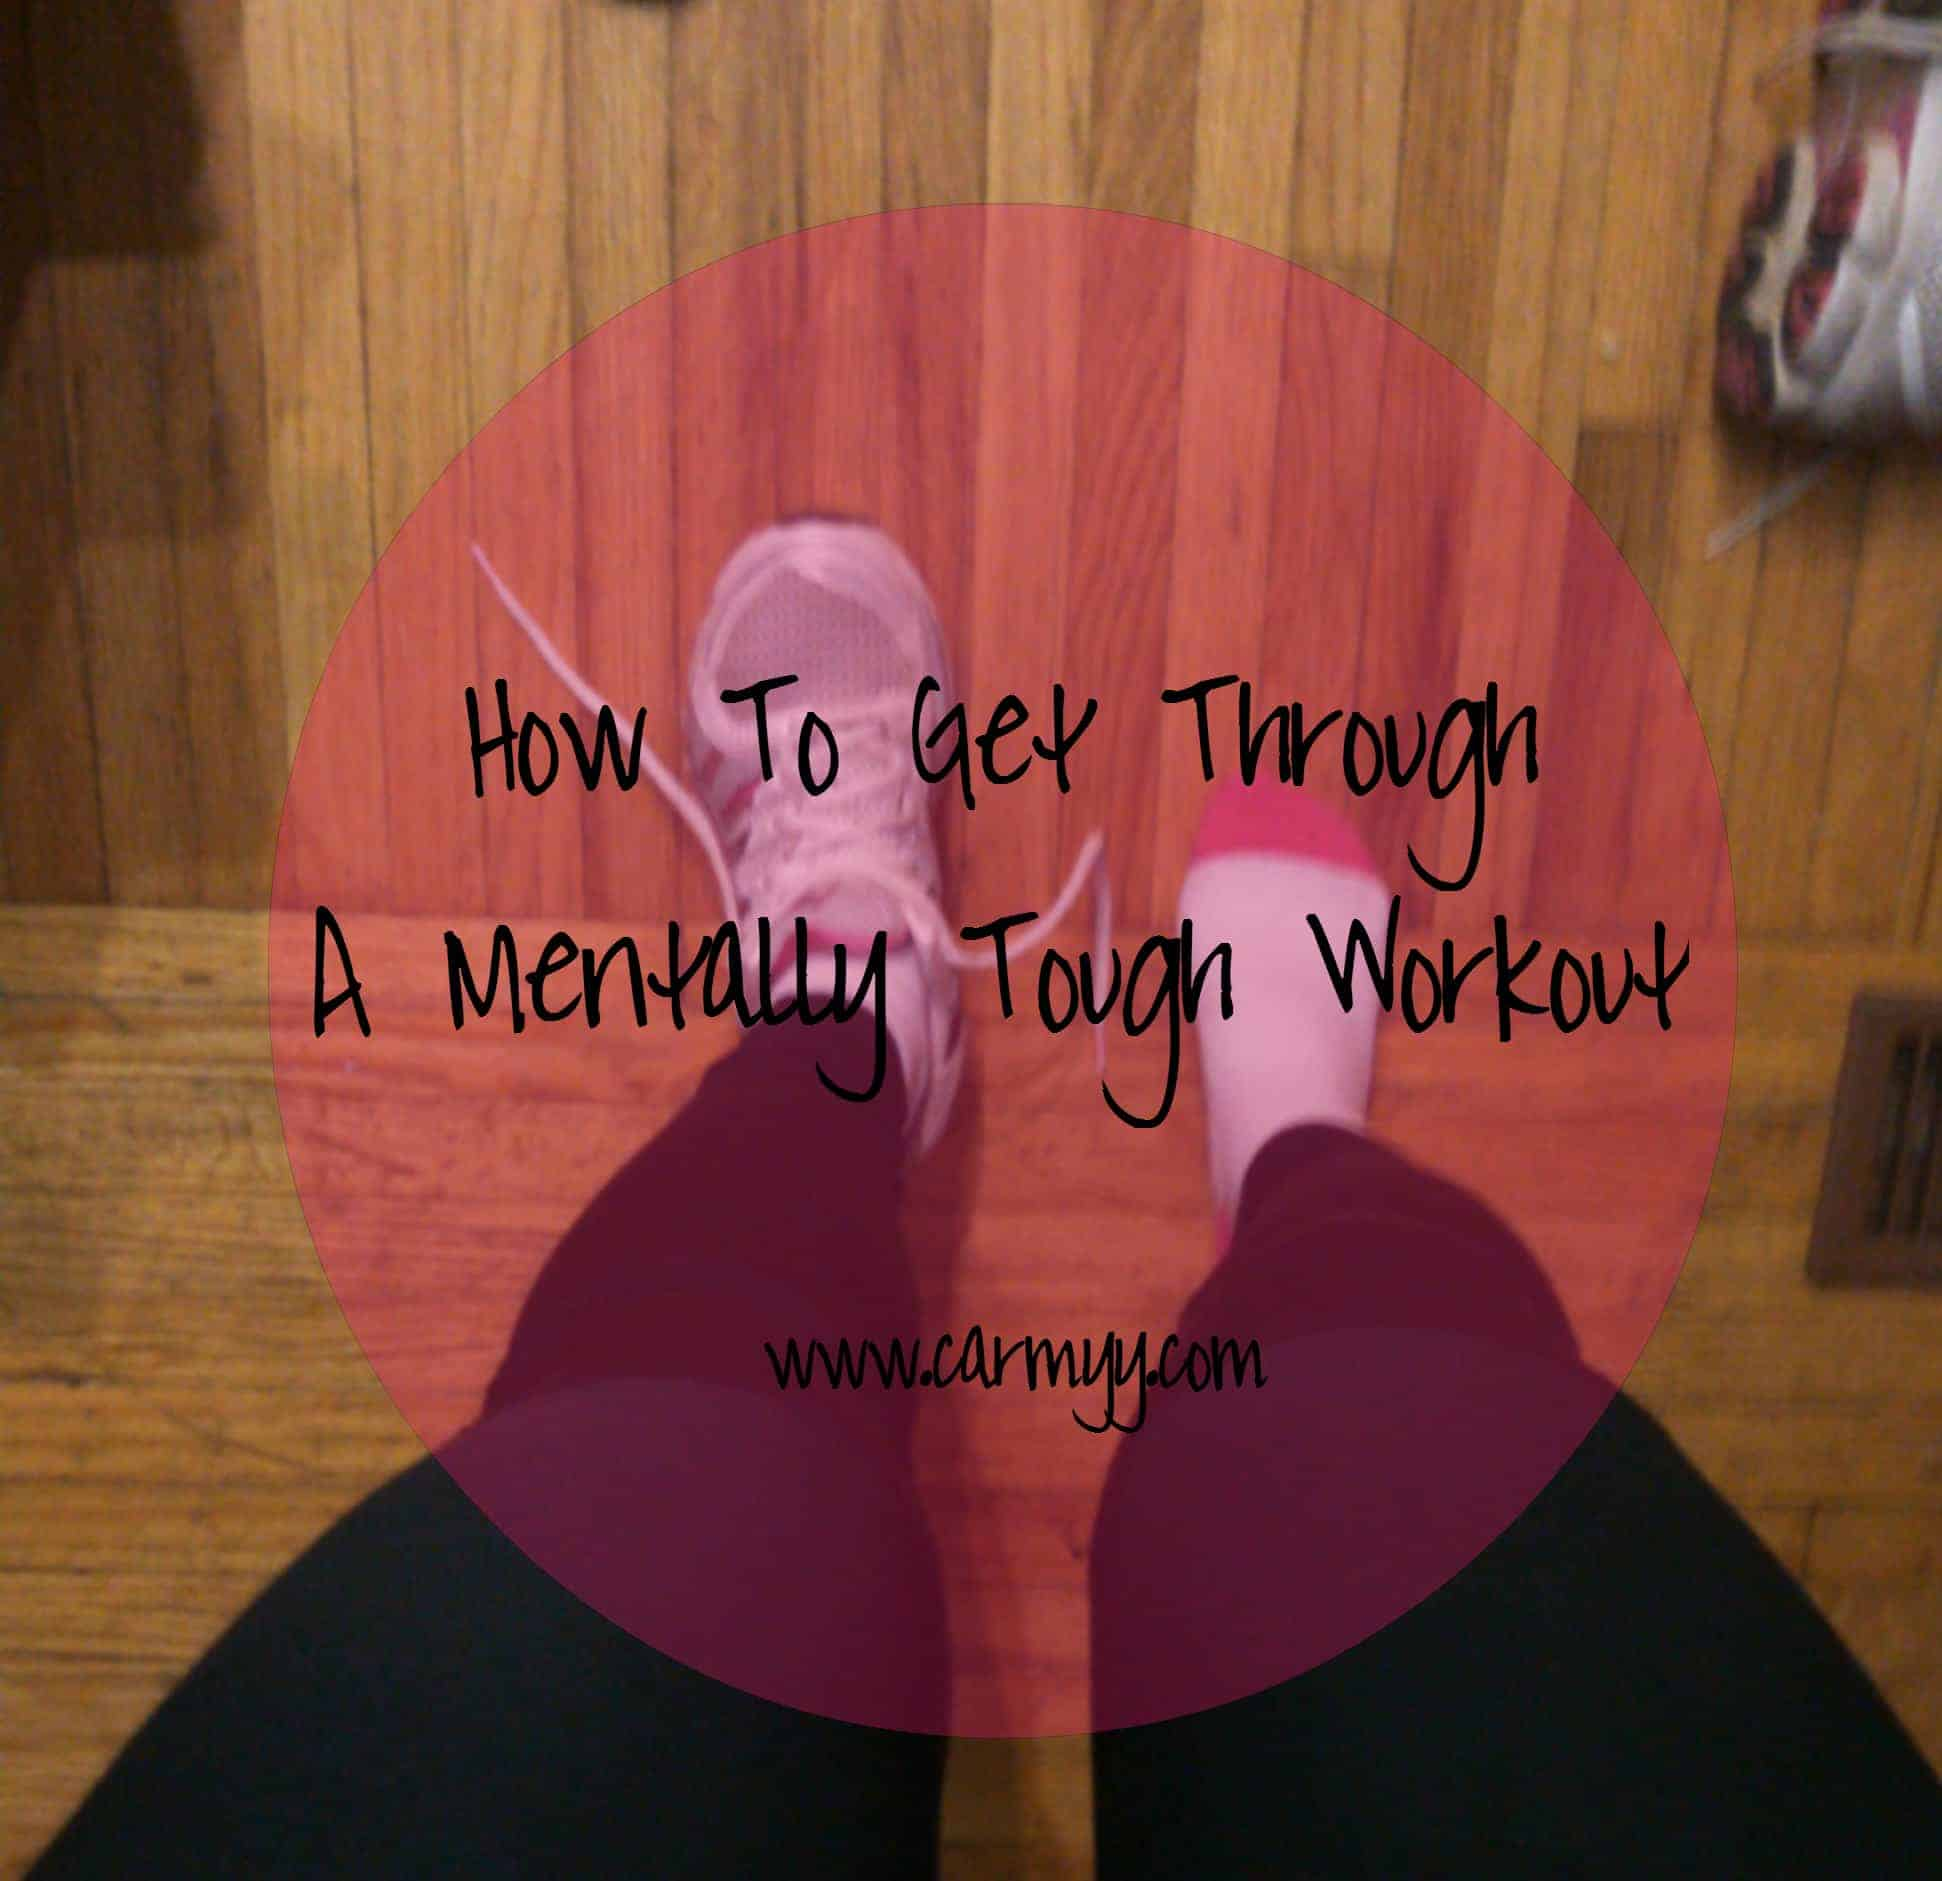 [BG 7] How To Get Through A Mentally Tough Workout